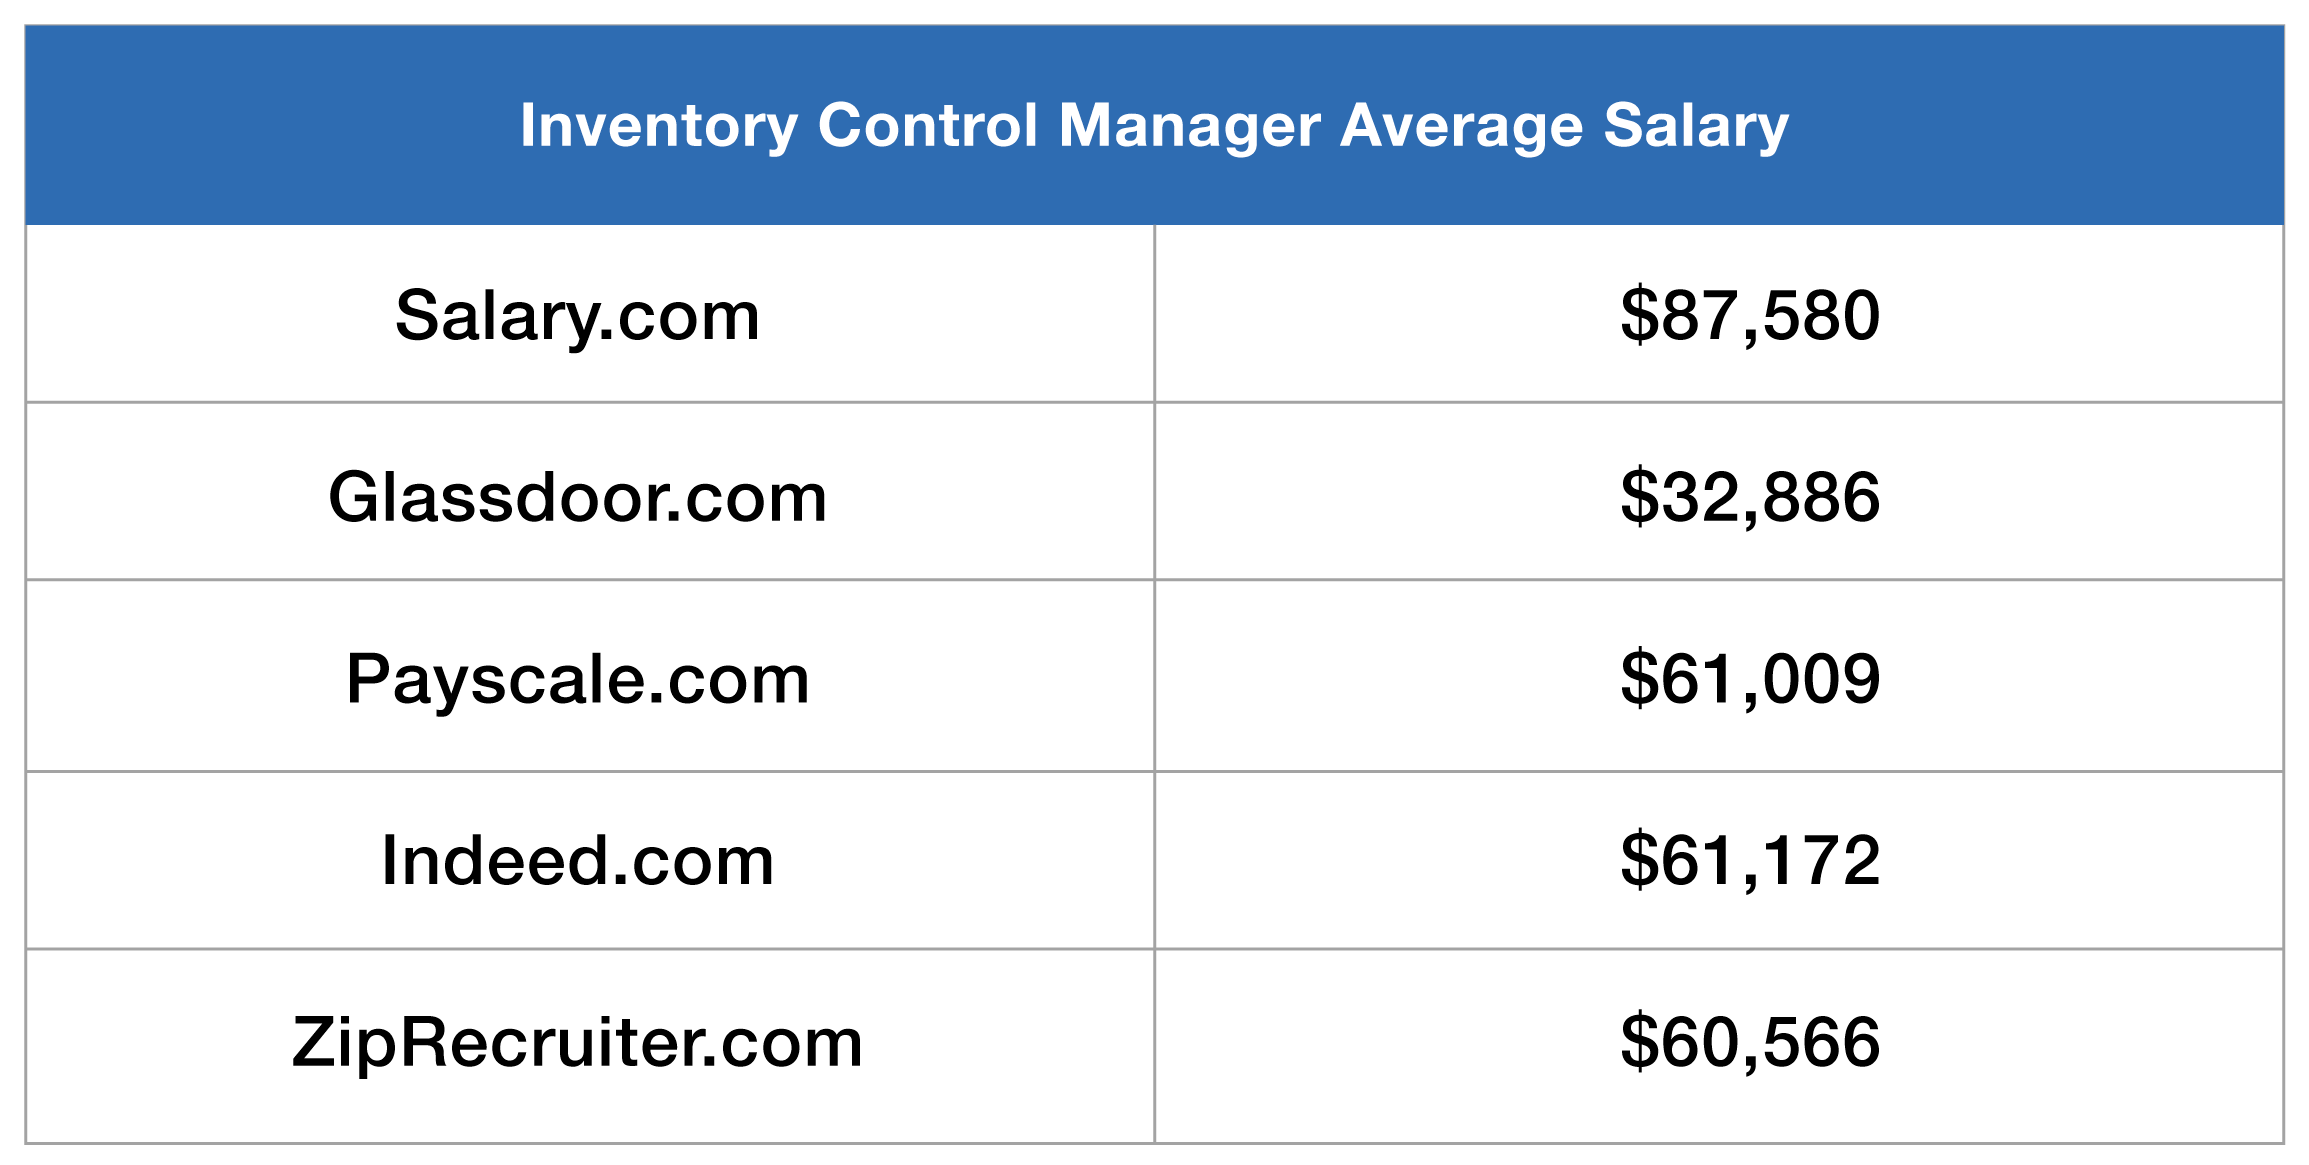 Average Inventory Control Manager Salary